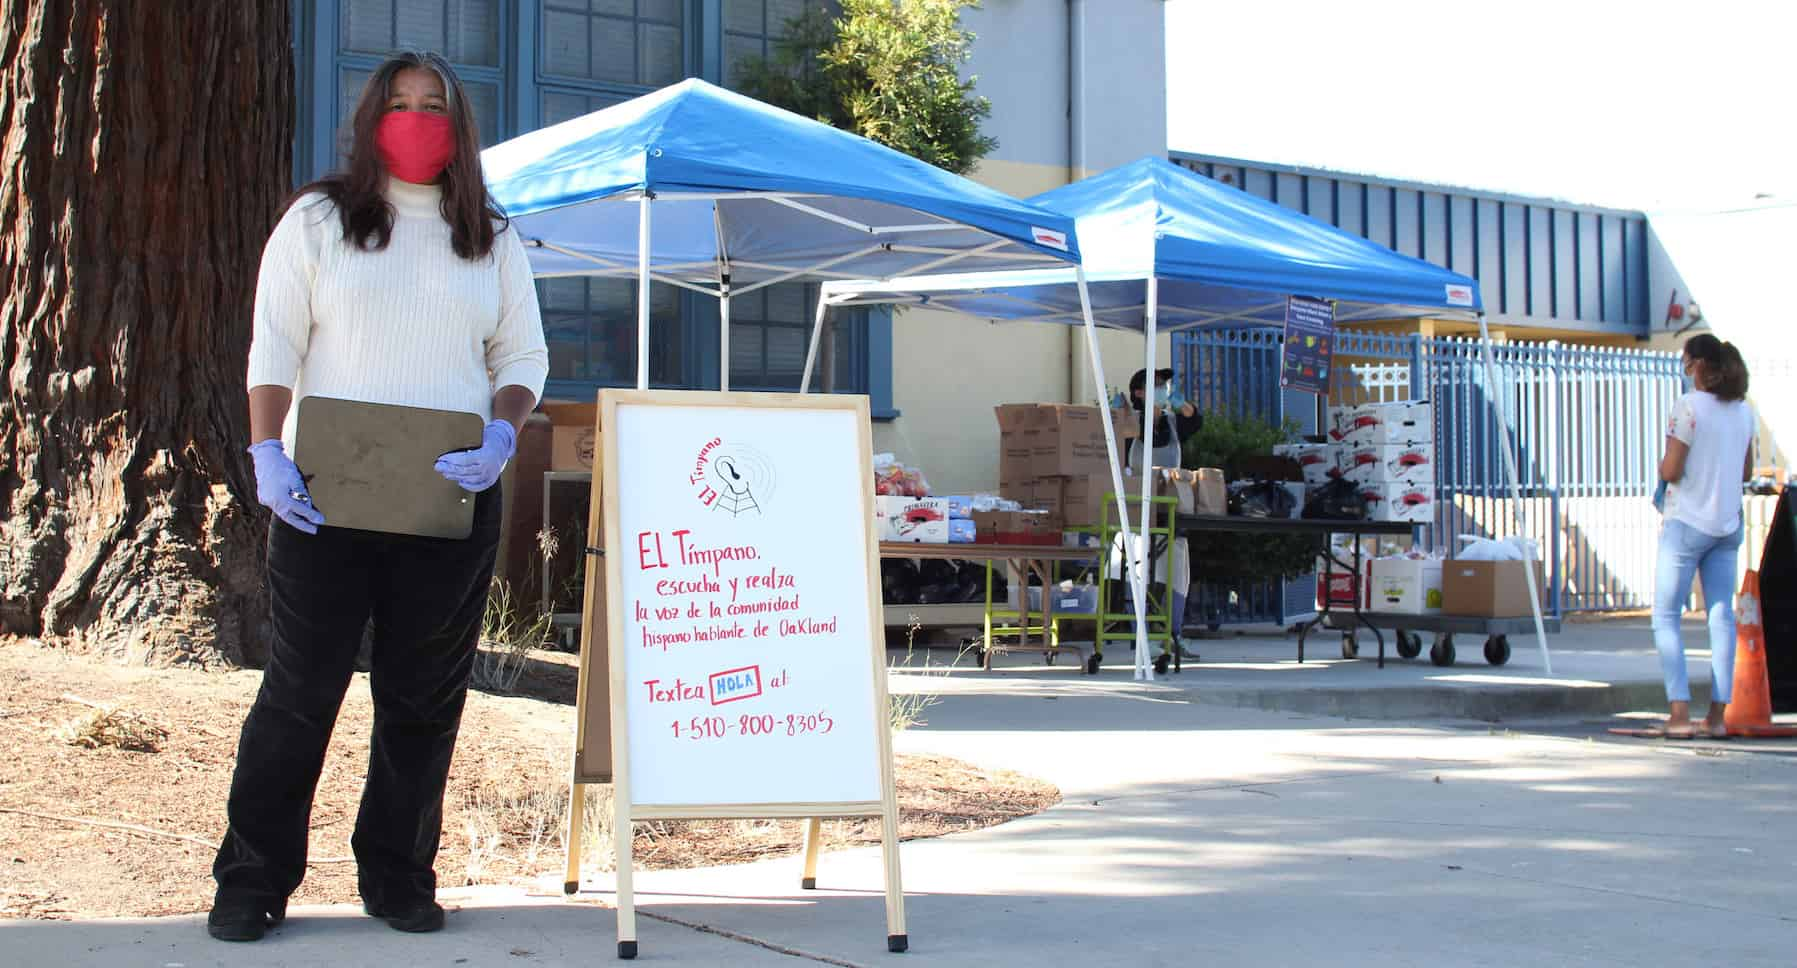 A woman stands outside a tent next to a white board advertising El Timpano